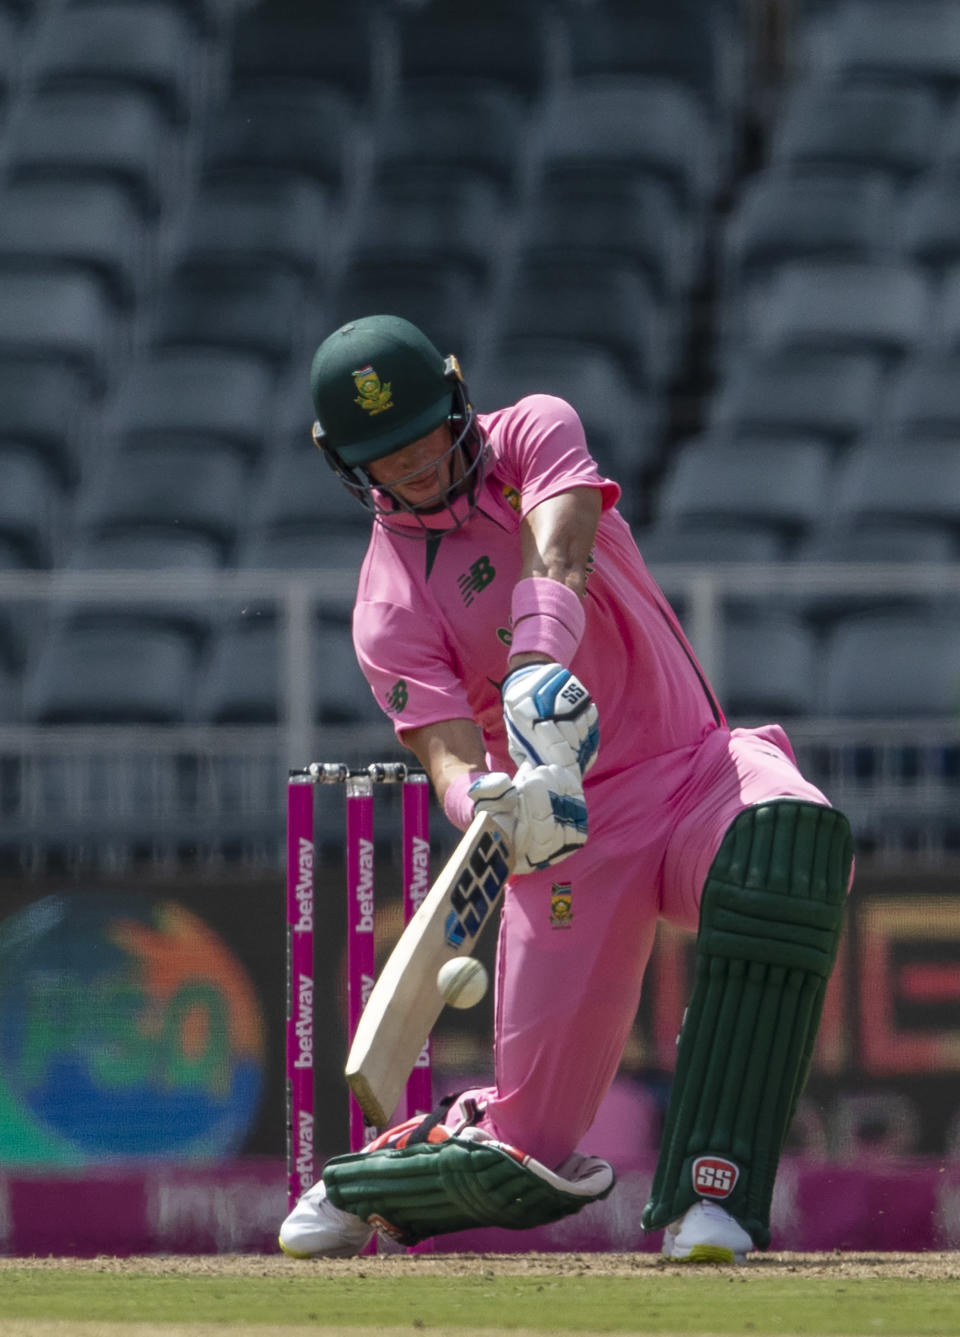 South Africa's batsman Rassie van der Dussen plays a shot during the second One Day International cricket match between South Africa and Pakistan at the Wanderers stadium in Johannesburg, South Africa, Sunday, April 4, 2021. (AP Photo/Themba Hadebe)